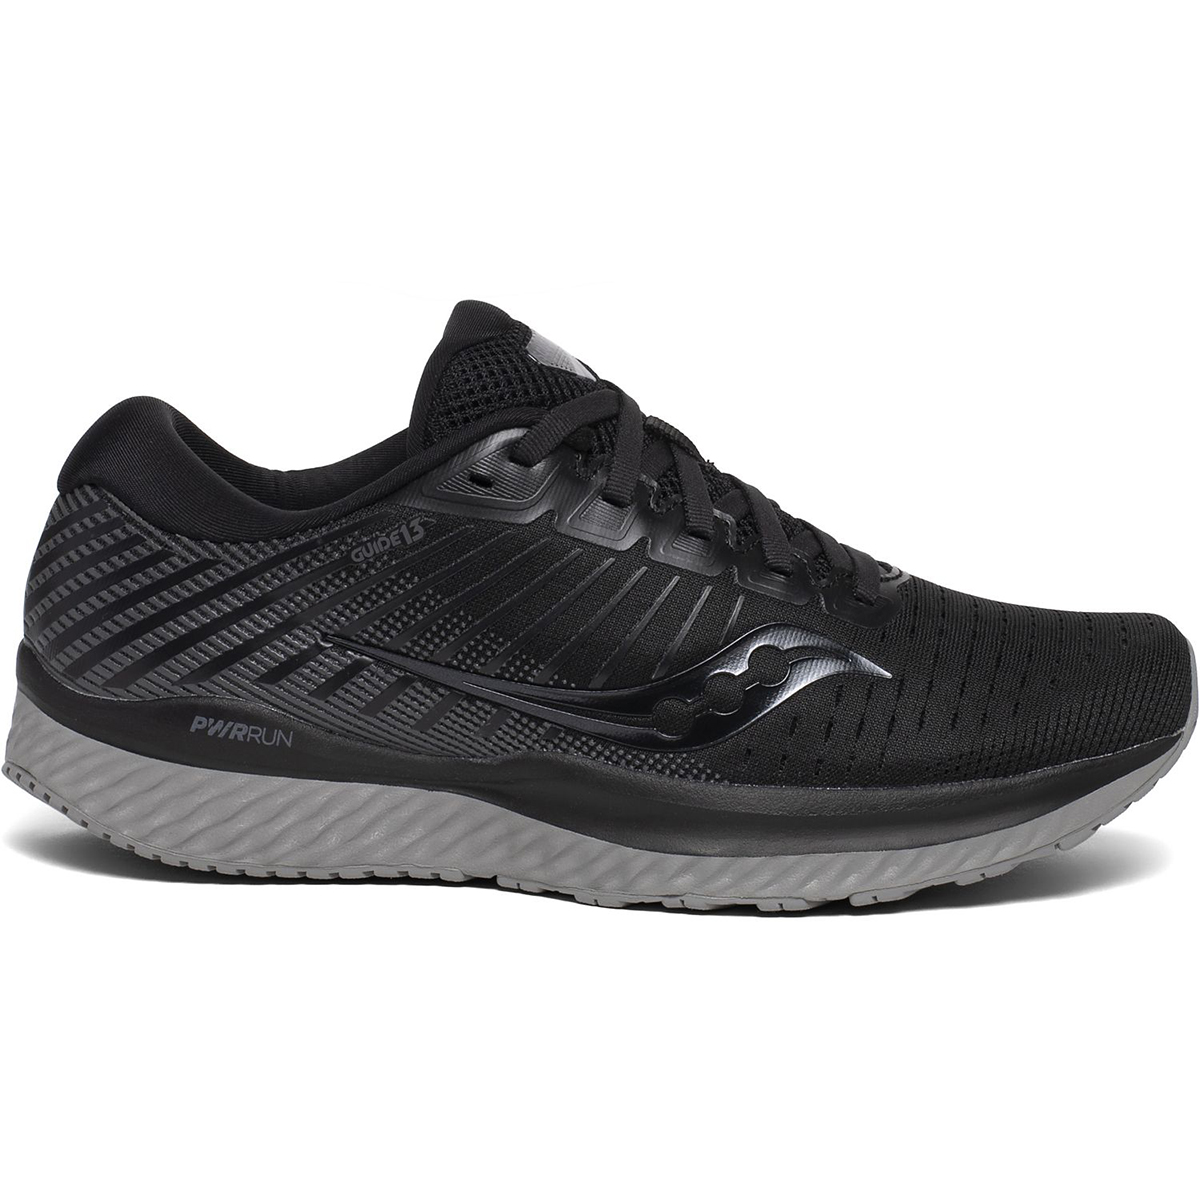 Saucony Women's Guide 13 Running Shoes, Wide - Black, 8